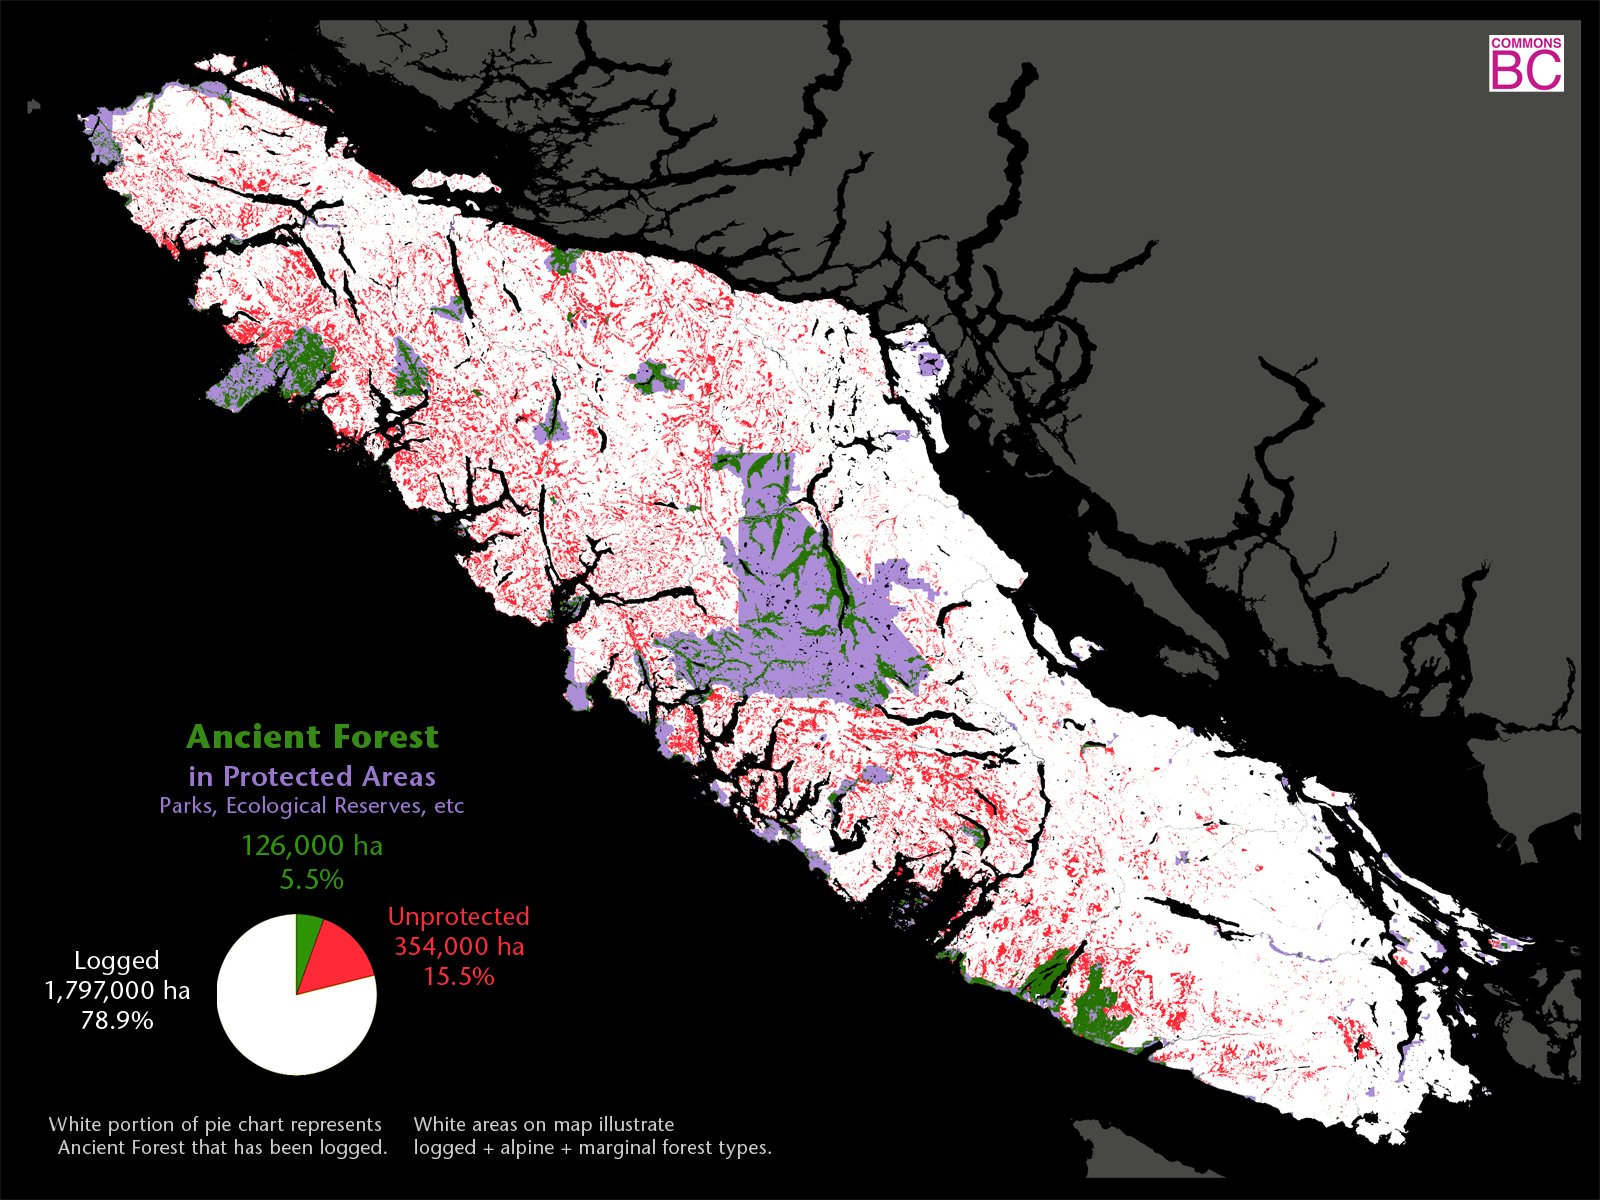 Protected areas of Vancouver Island - map supplied by Commons BC